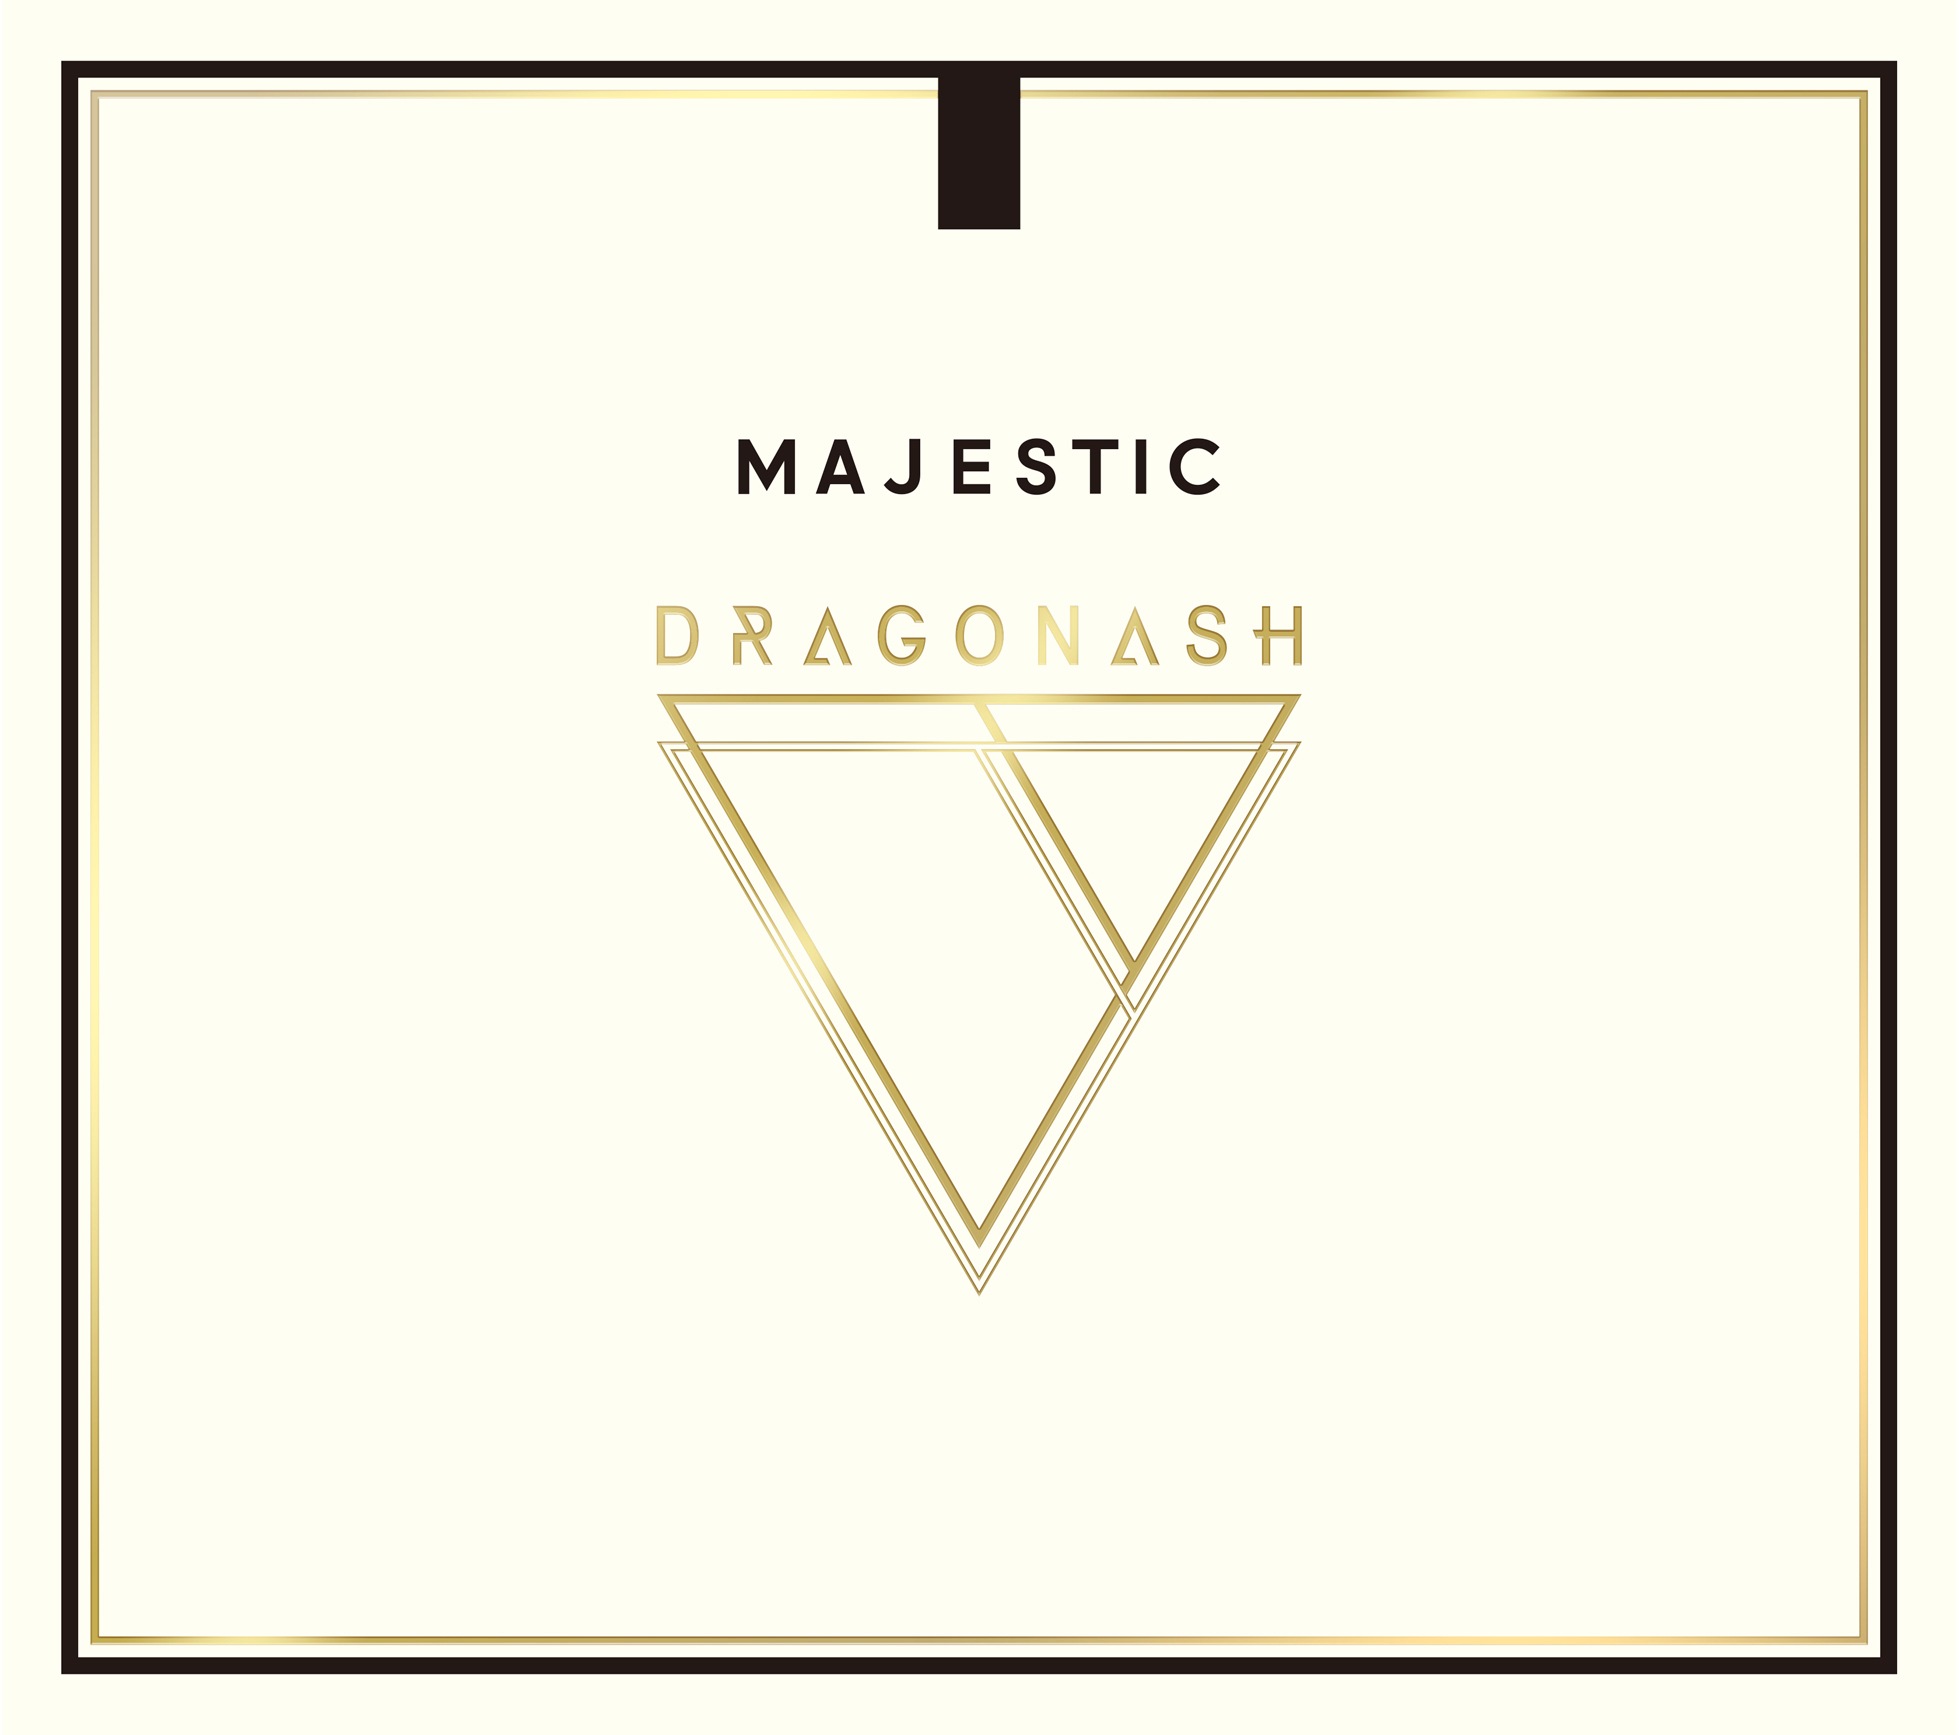 Dragon Ash『MAJESTIC』